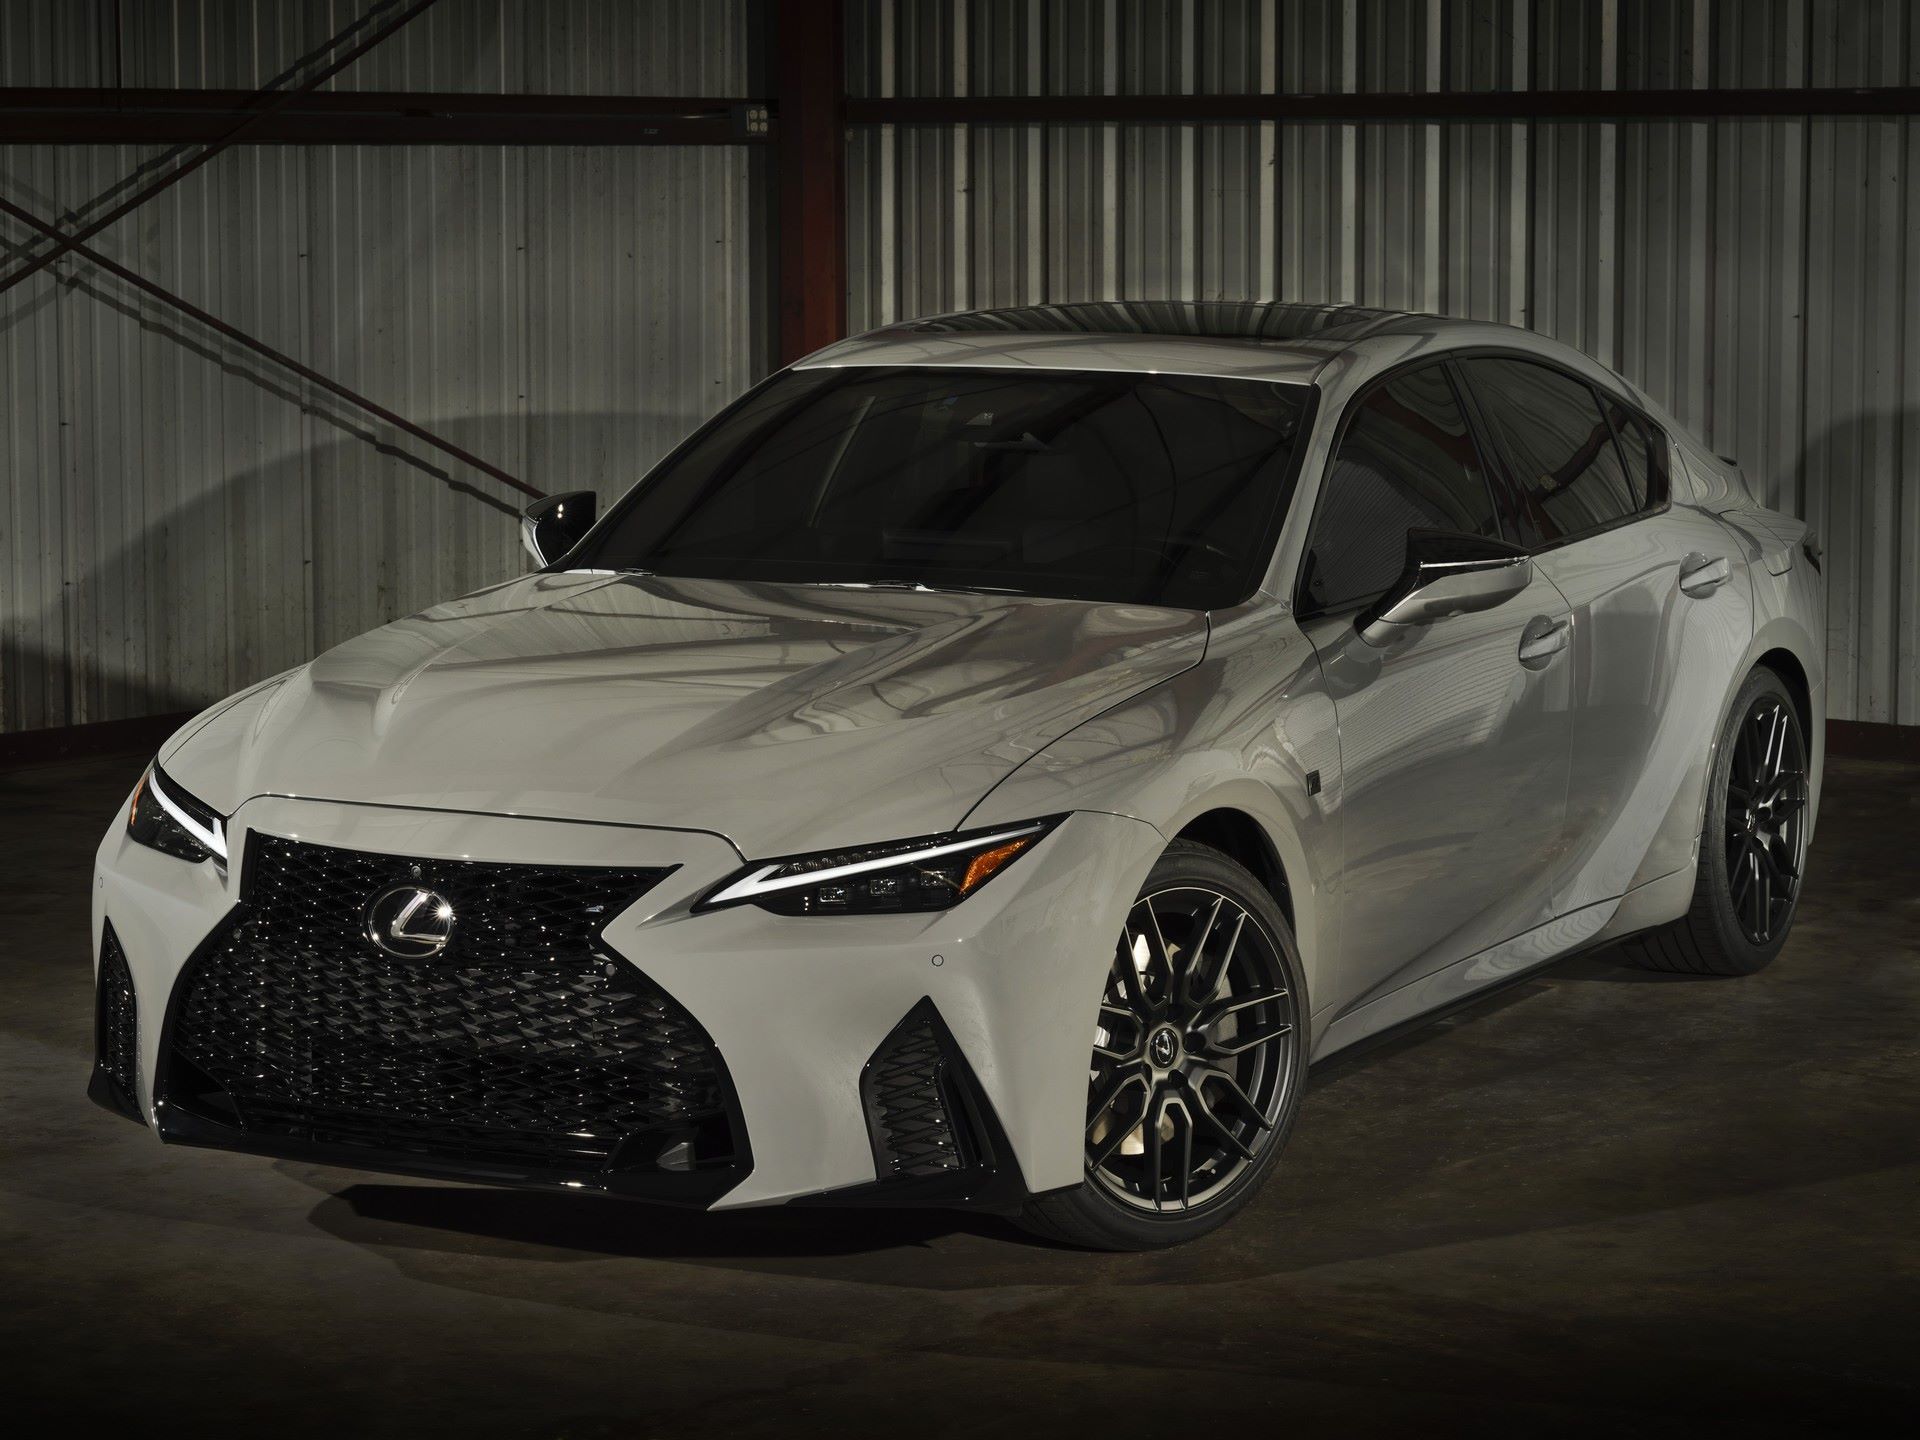 Lexus-IS-500-F-Sport-Performance-Launch-Edition-2